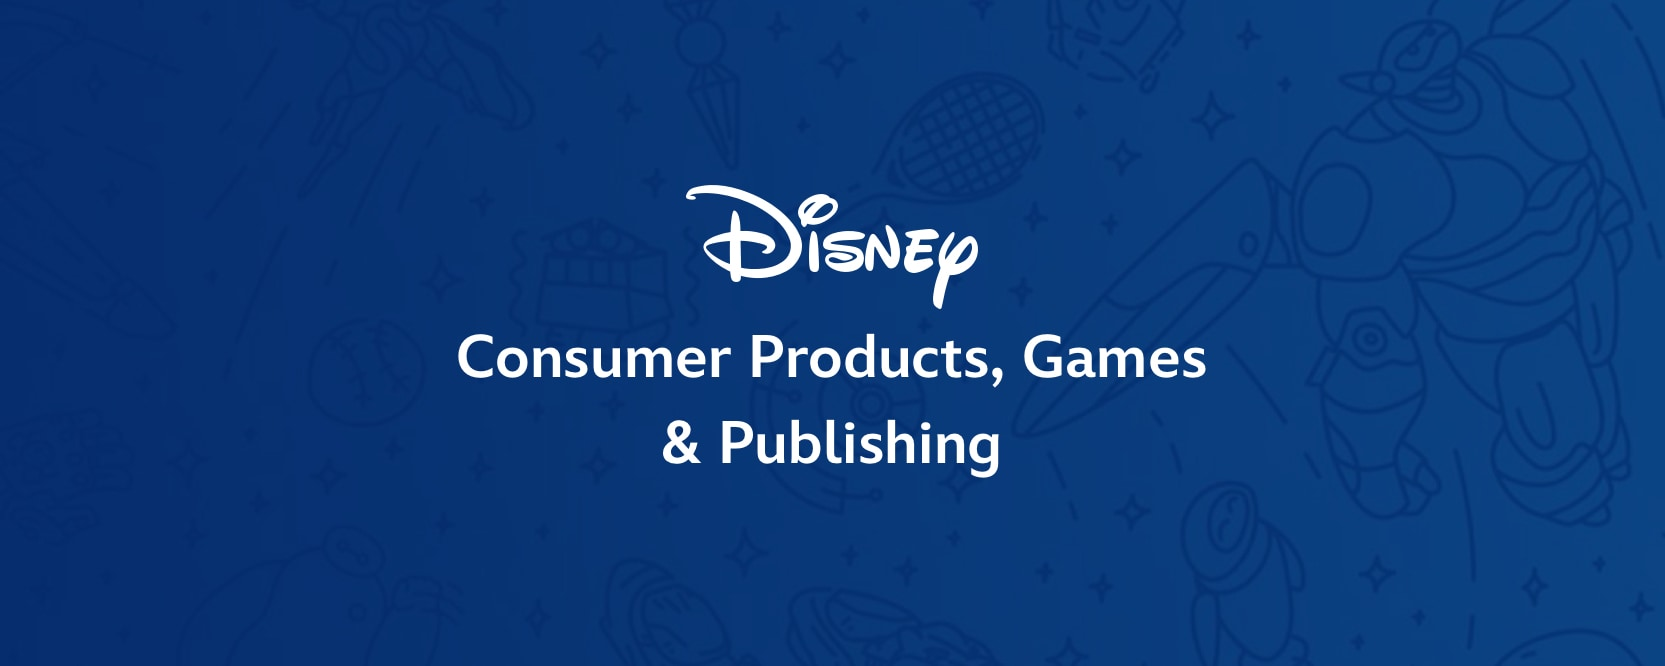 Disney Consumer Products, Games & Publishing